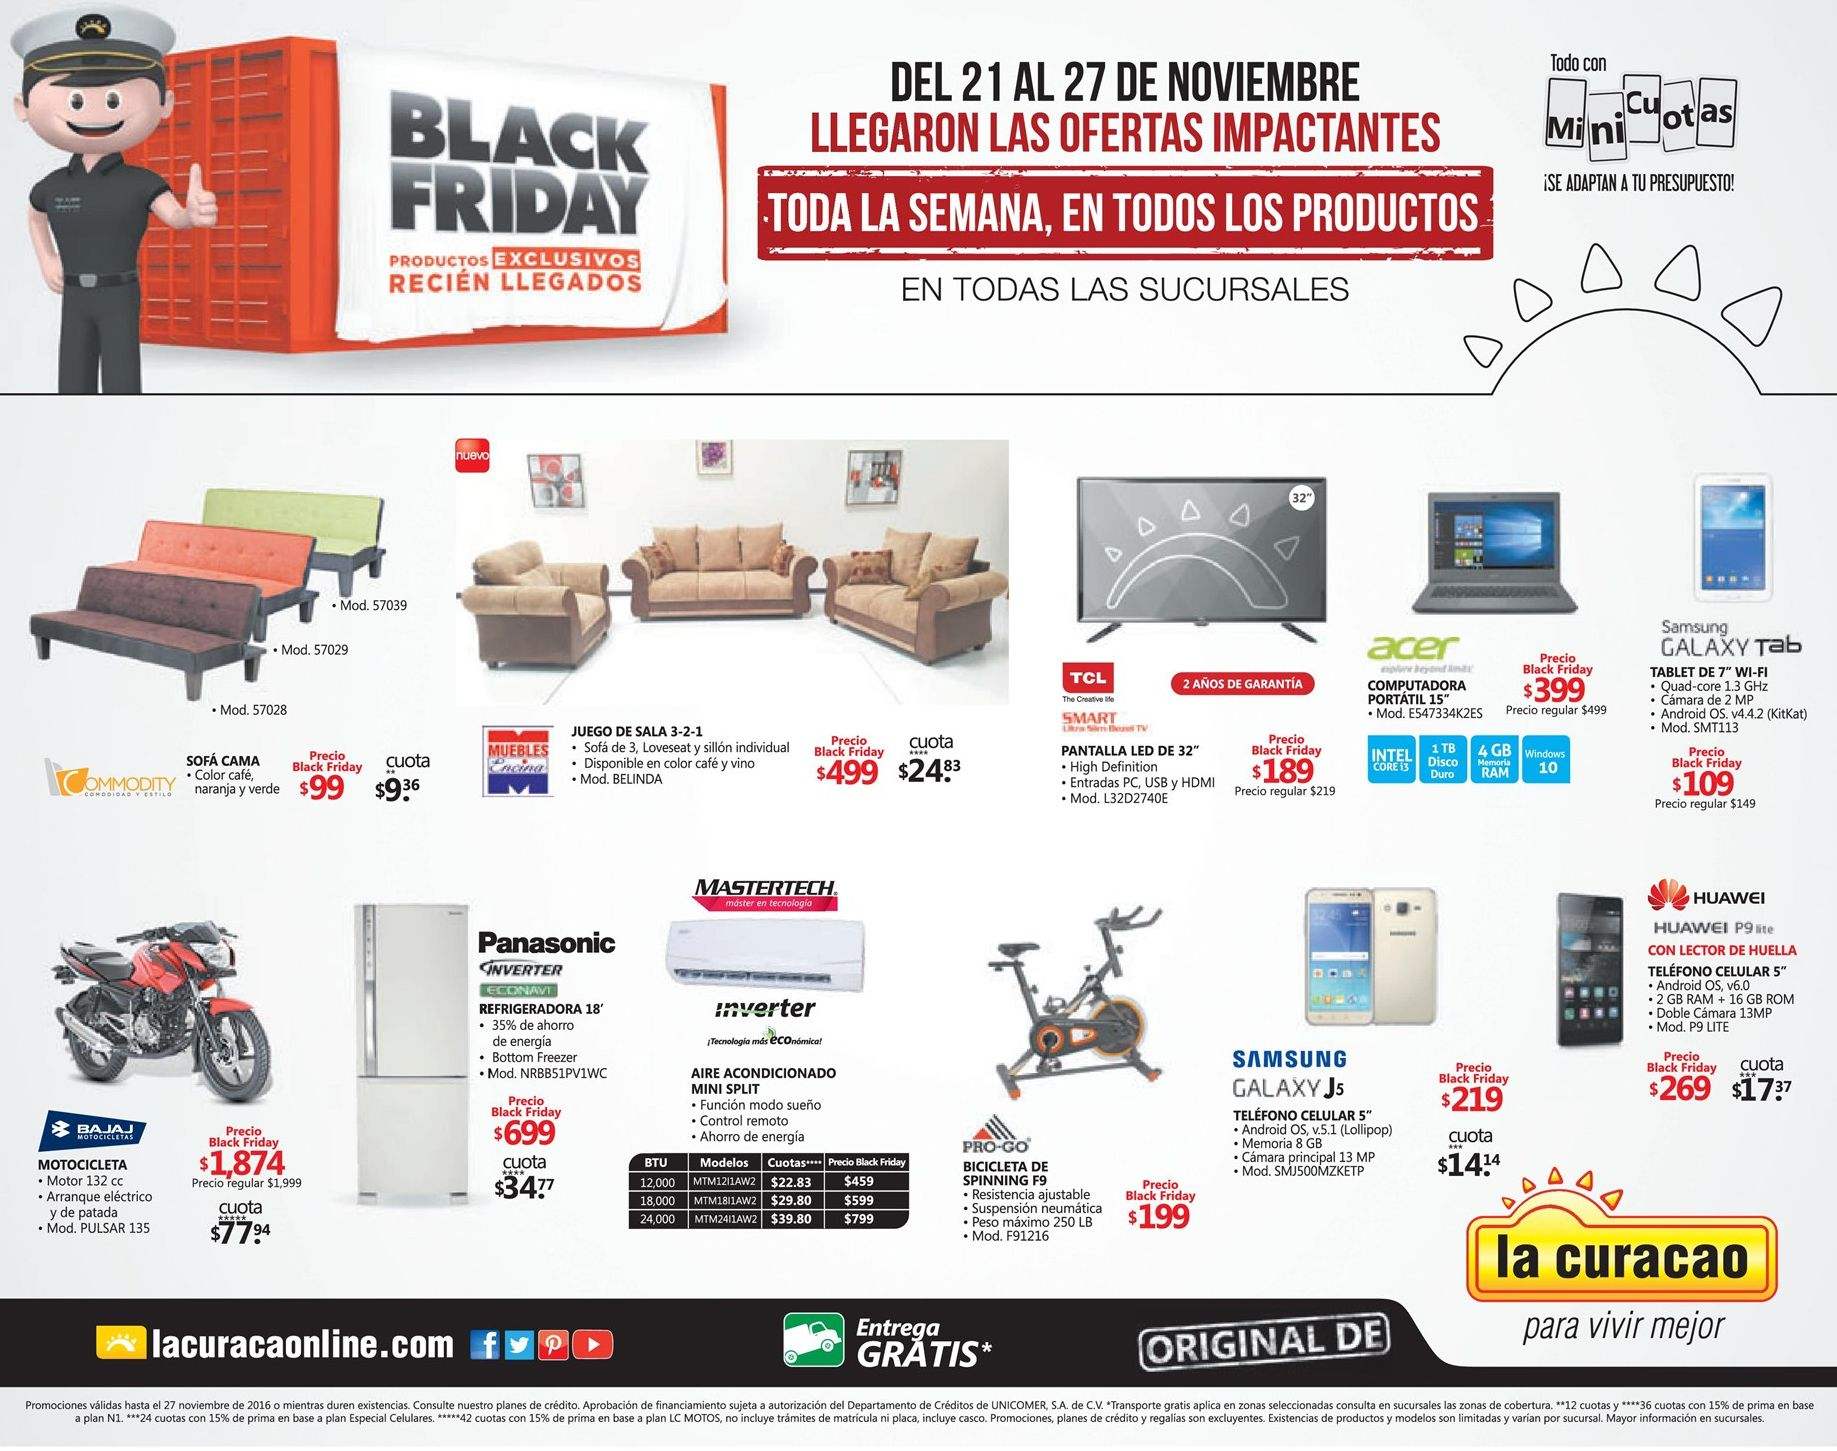 productos-exclusivos-de-la-curacao-en-black-friday-2016